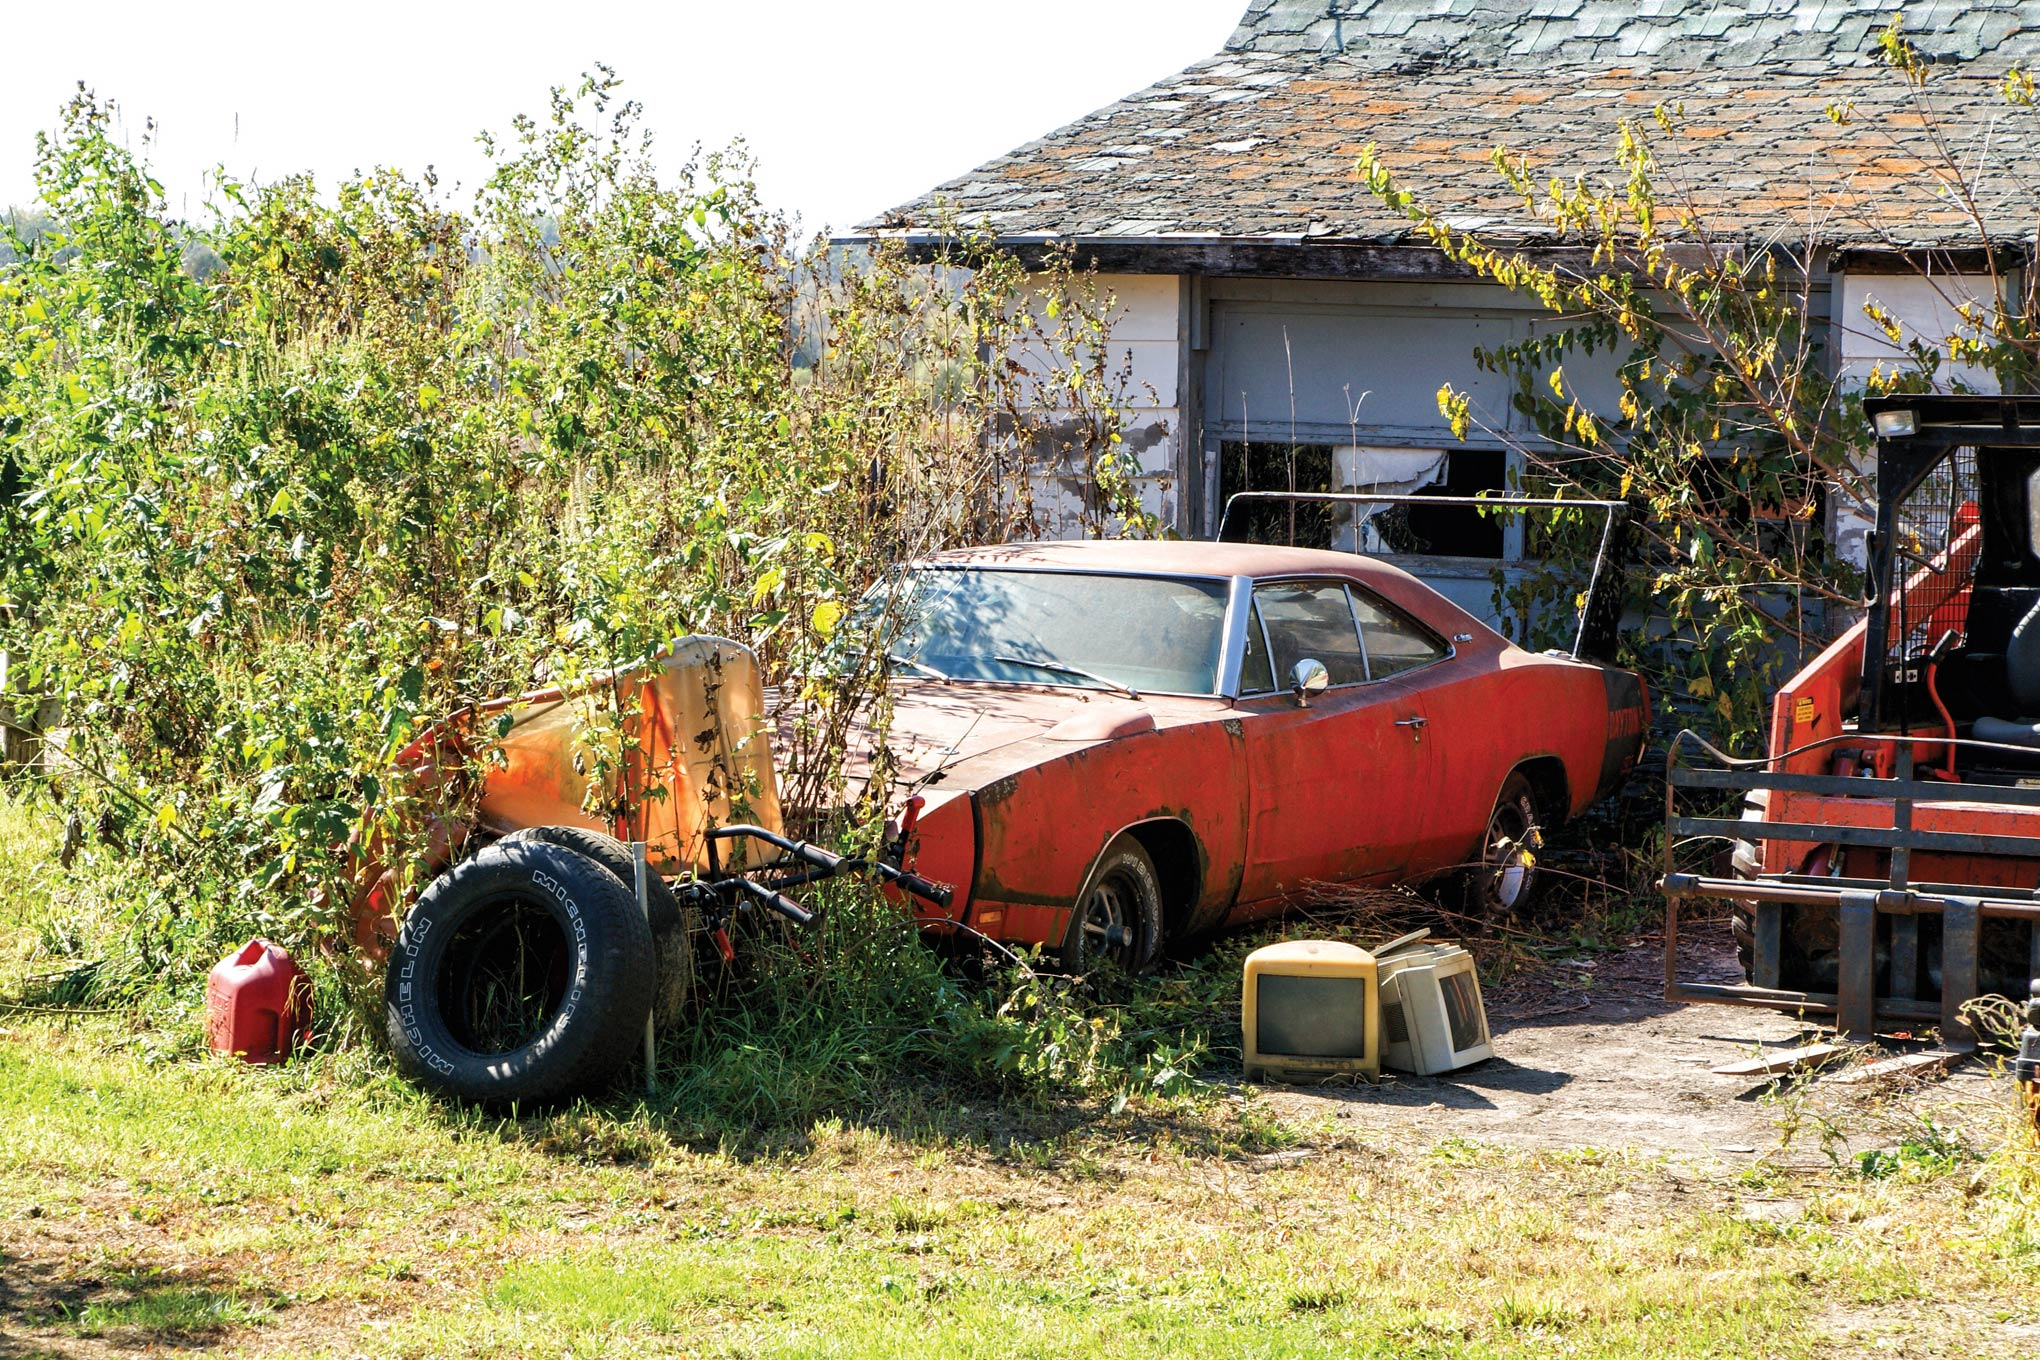 During the last three years, the weeds around this 440ci Daytona have grown and a skid-steer loader has replaced the car parked next to it.